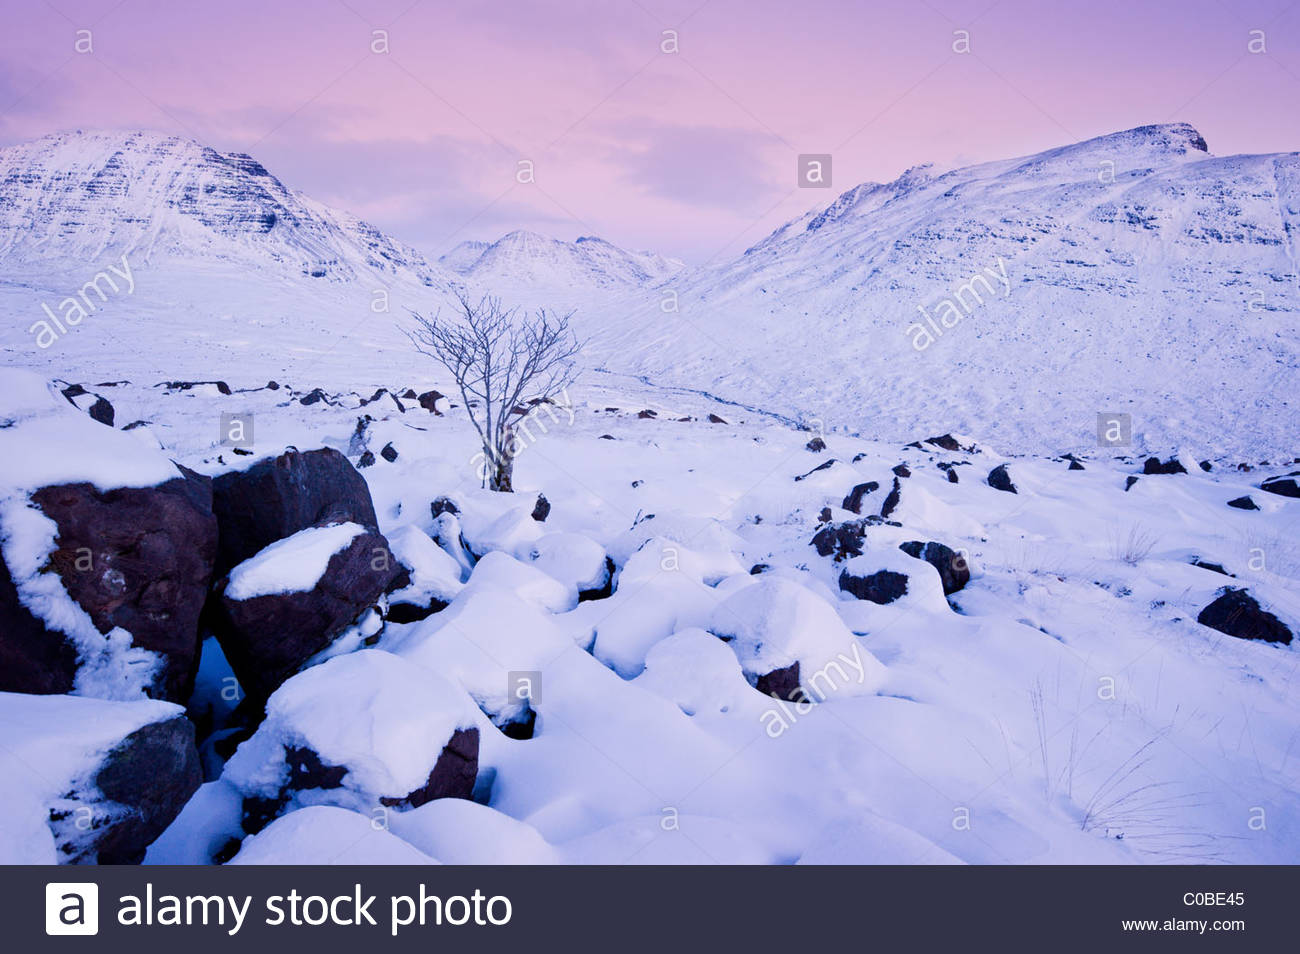 Torridon hills, Highlands of Scotland. - Stock Image